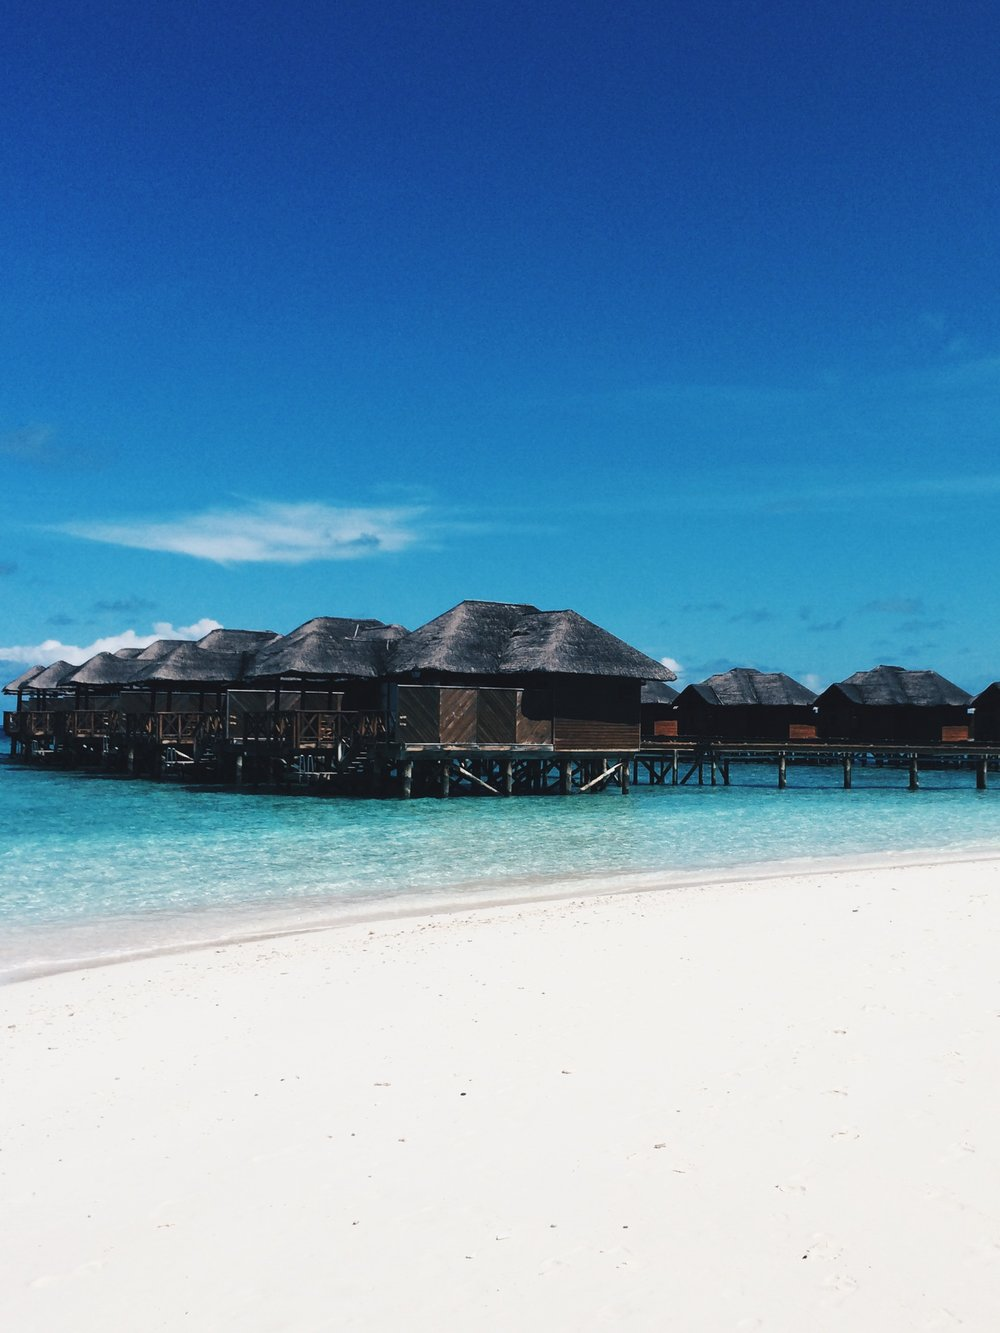 The overwater bungalows at Fihalhohi